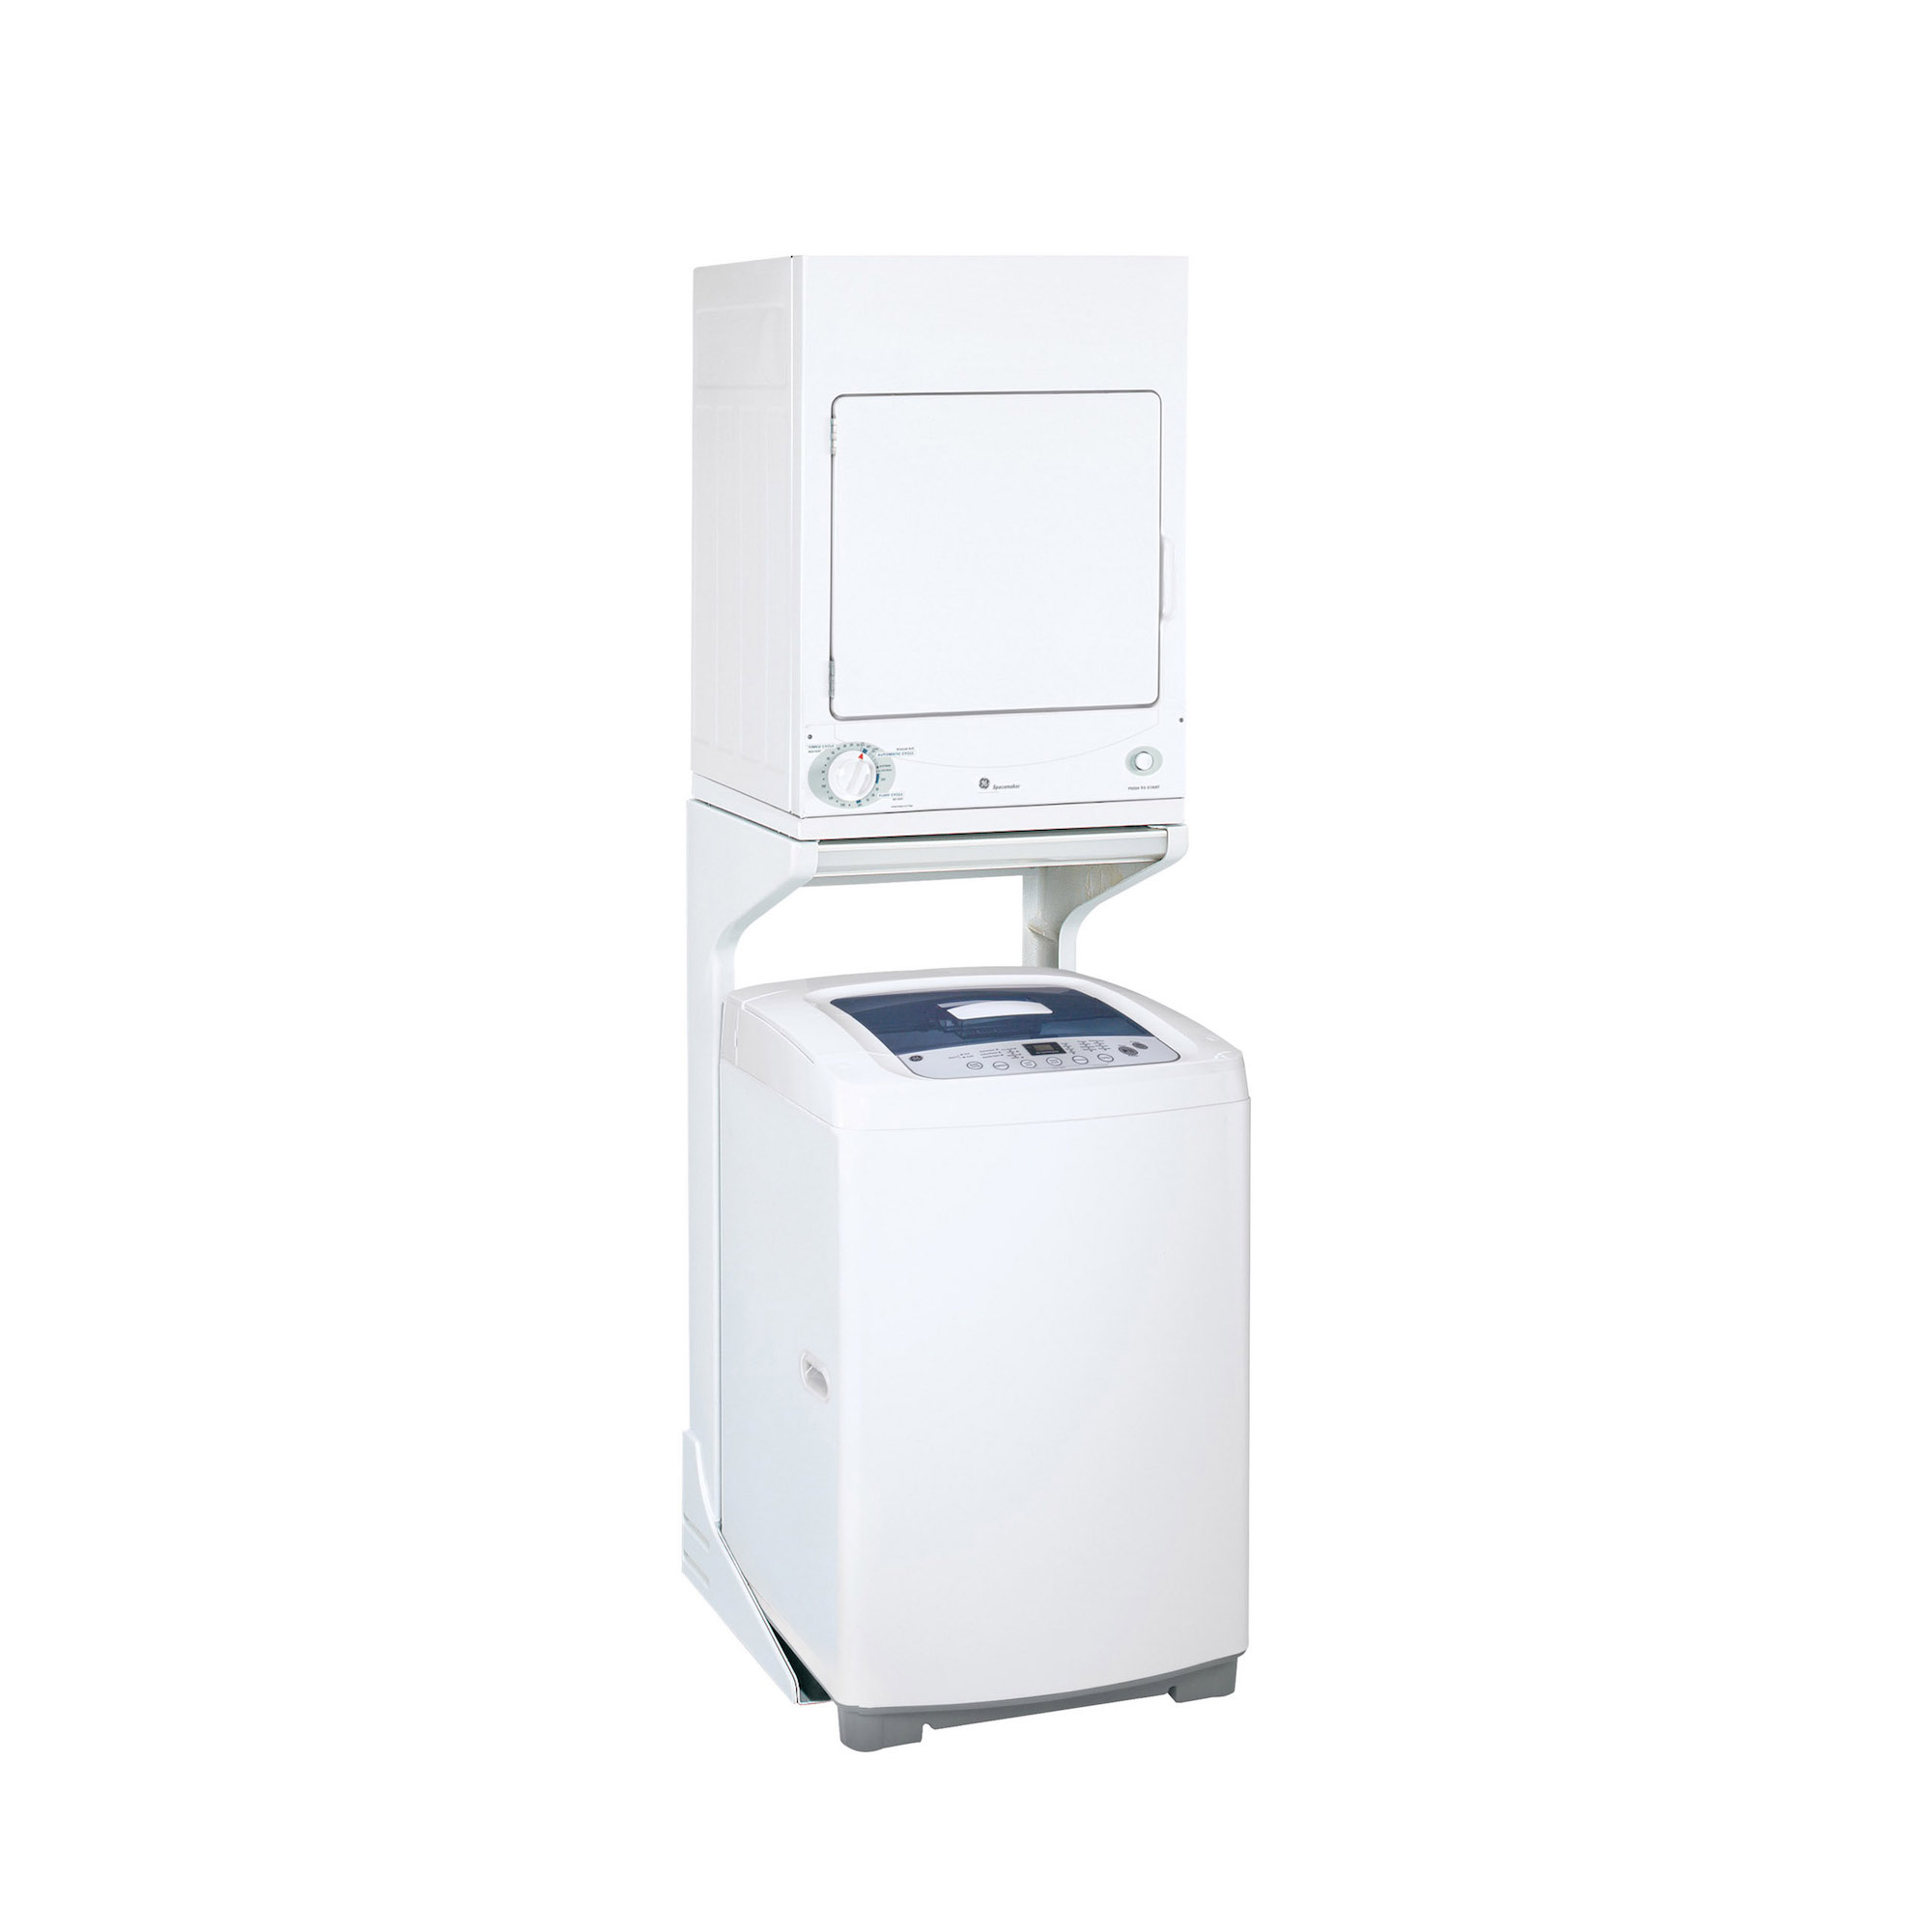 Rent To Own Ge Appliances Space Saving 2 6 Cu Ft Portable Washer 3 6 Cu Ft 120v Portable Electric Dryer At Aaron S Today